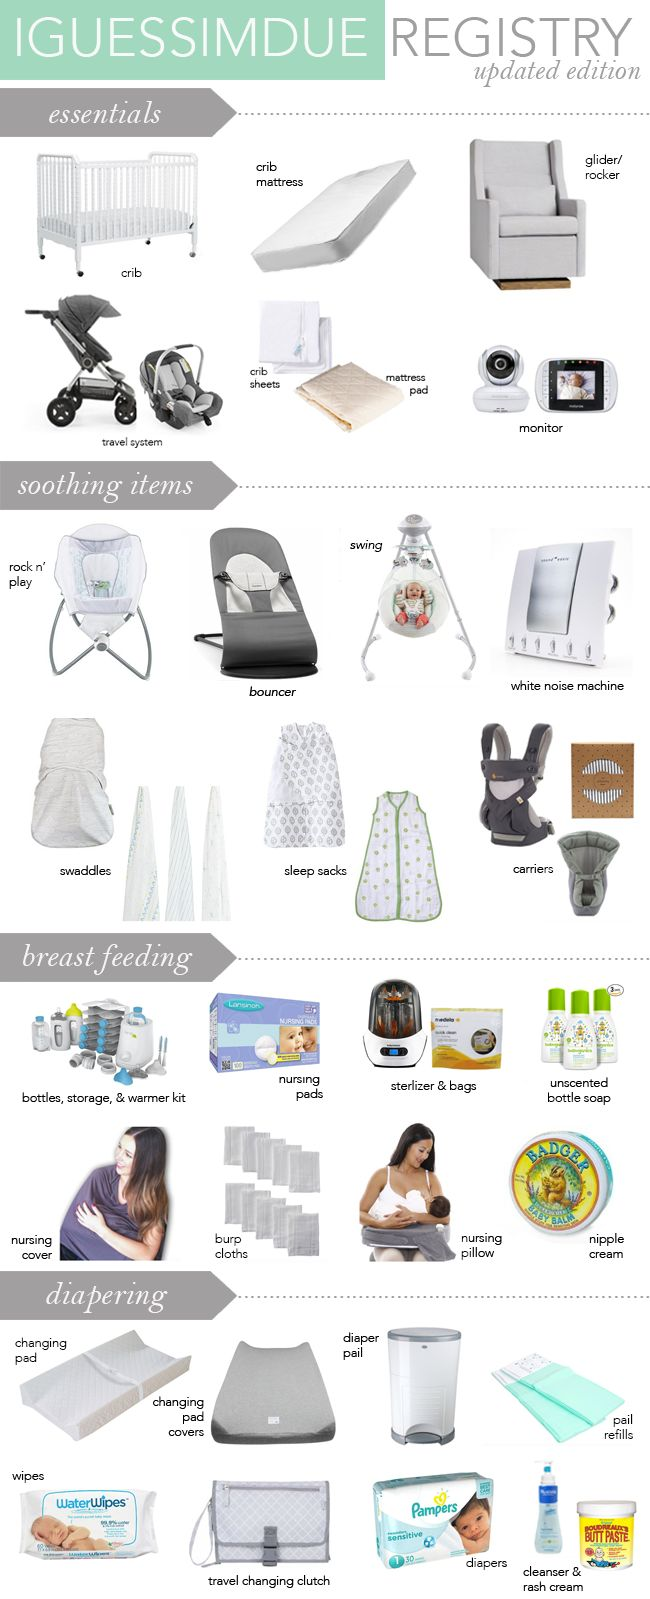 THE ULTIMATE MINIMALIST BABY REGISTRY GUIDE & CHECKLIST FOR NEWBORN ESSENTIALS!